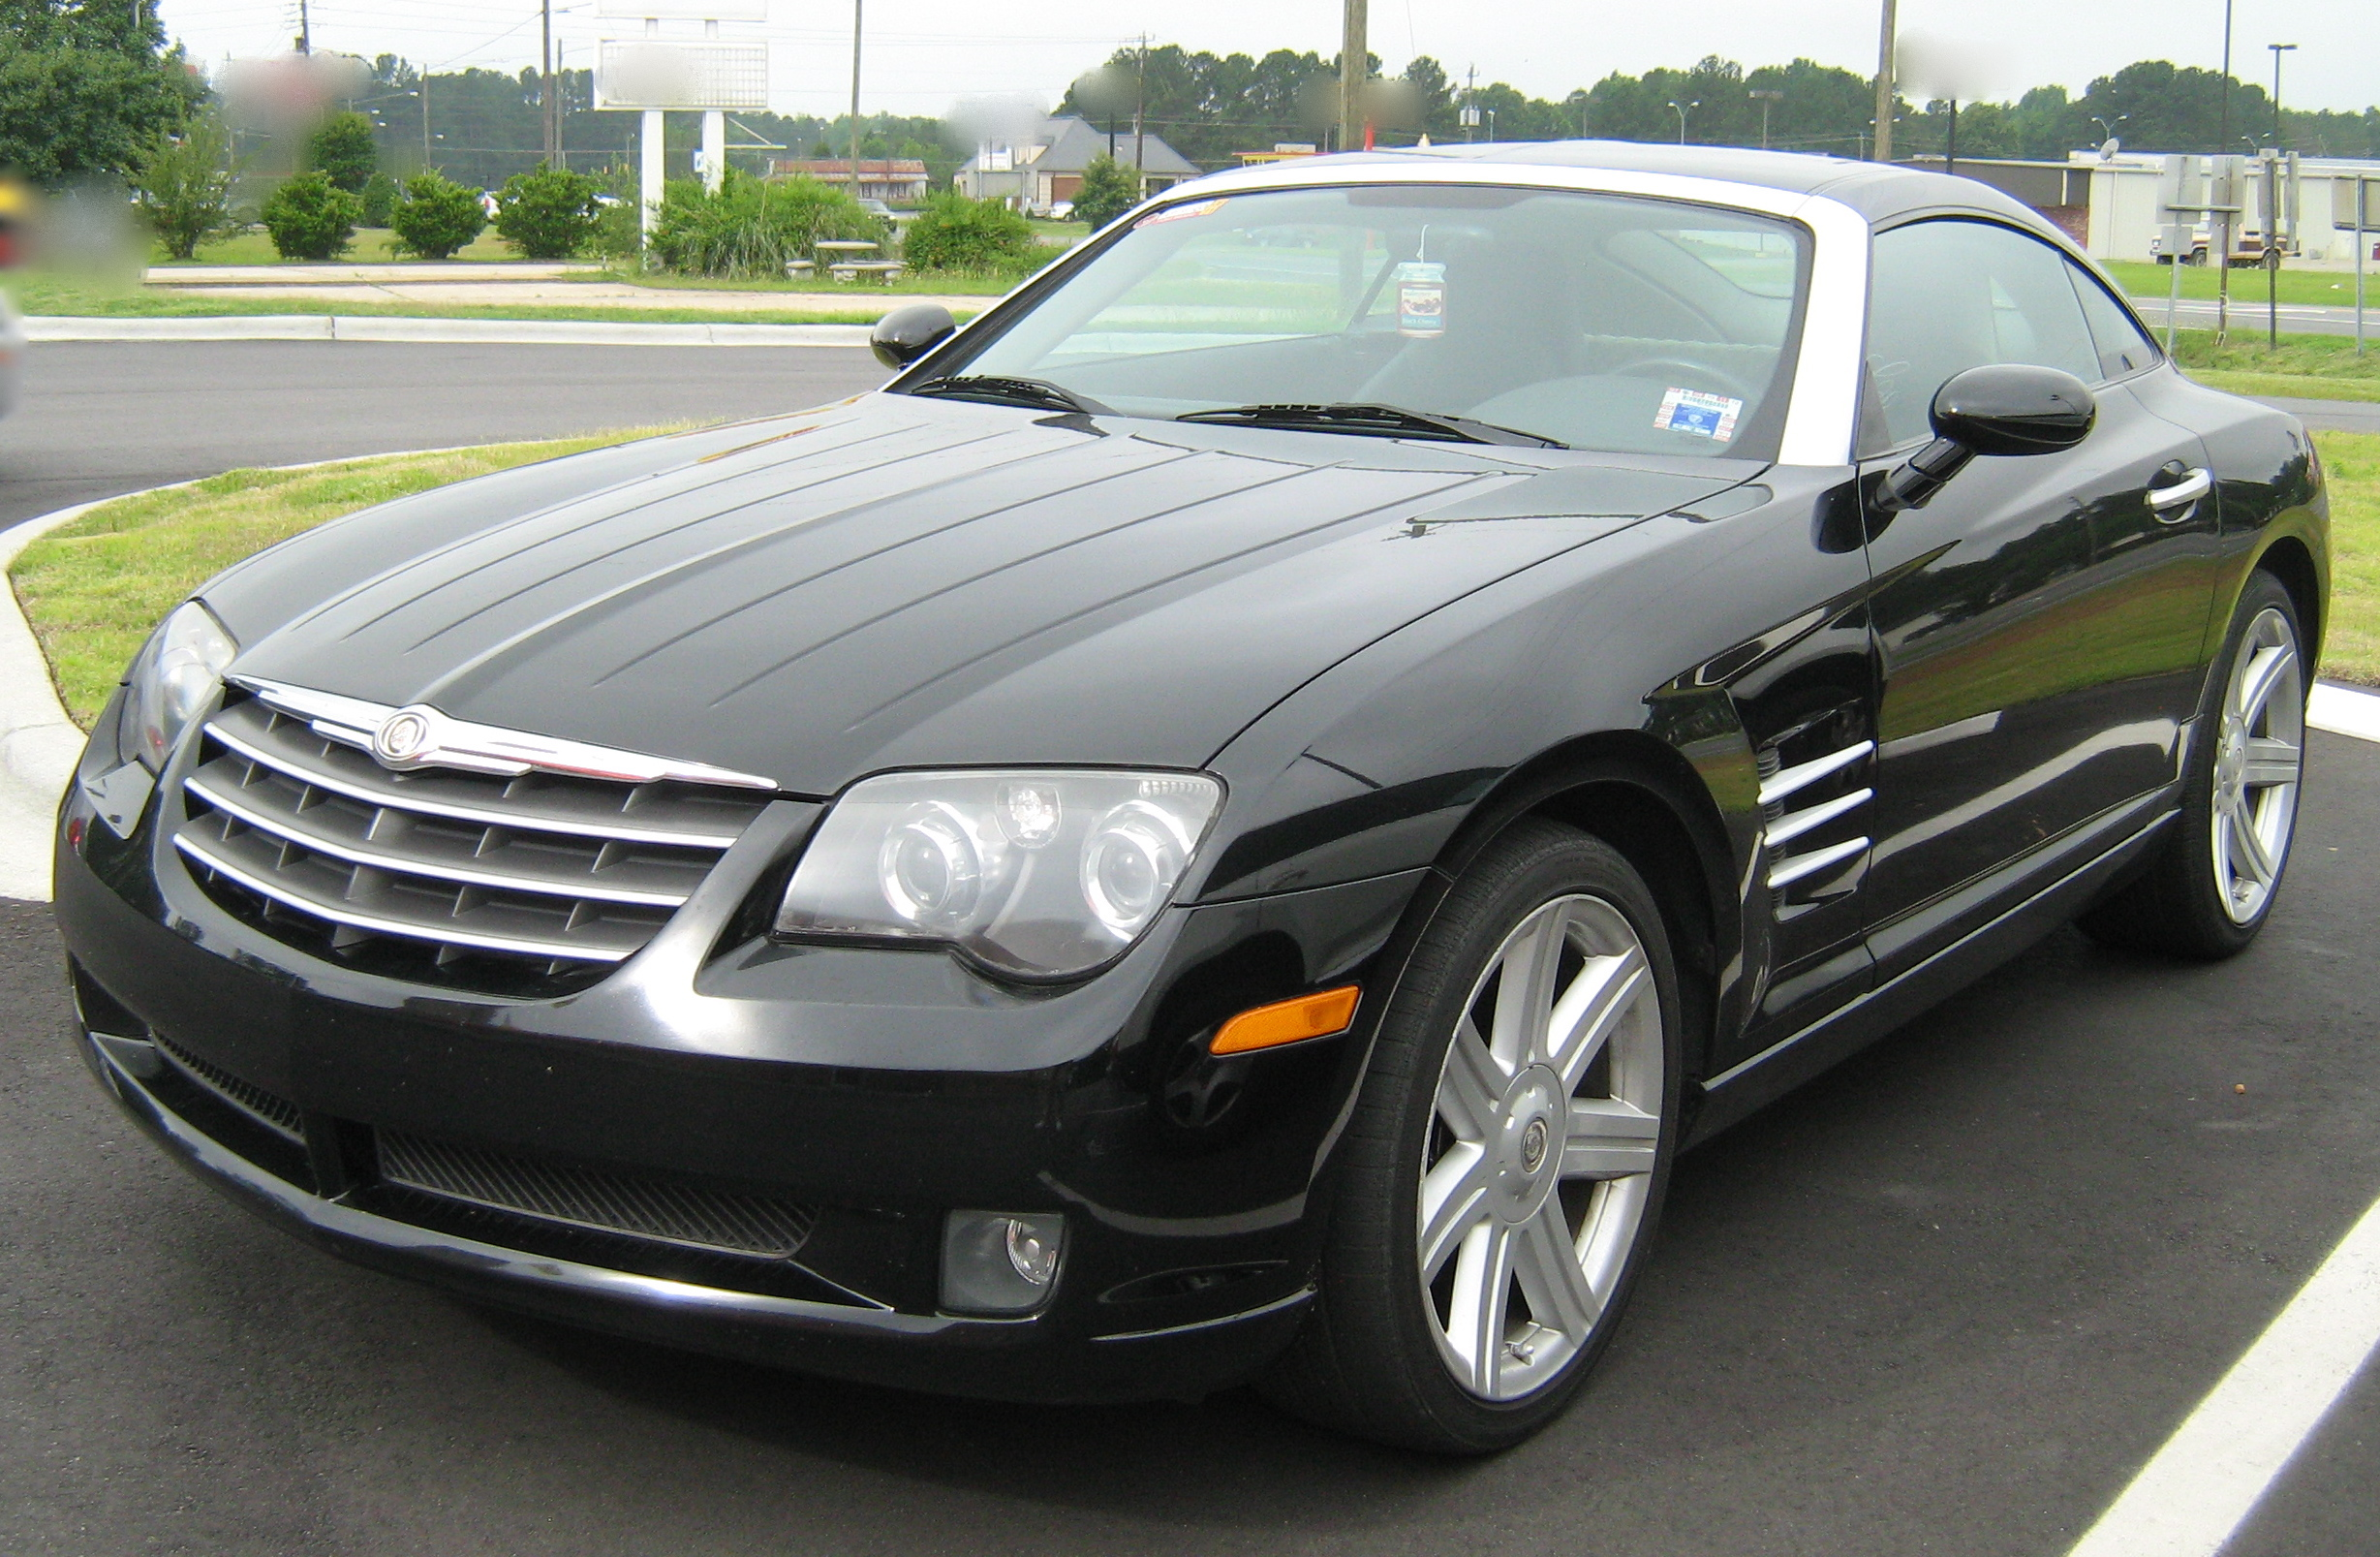 File:Chrysler Crossfire coupe black NC.jpg - Wikipedia